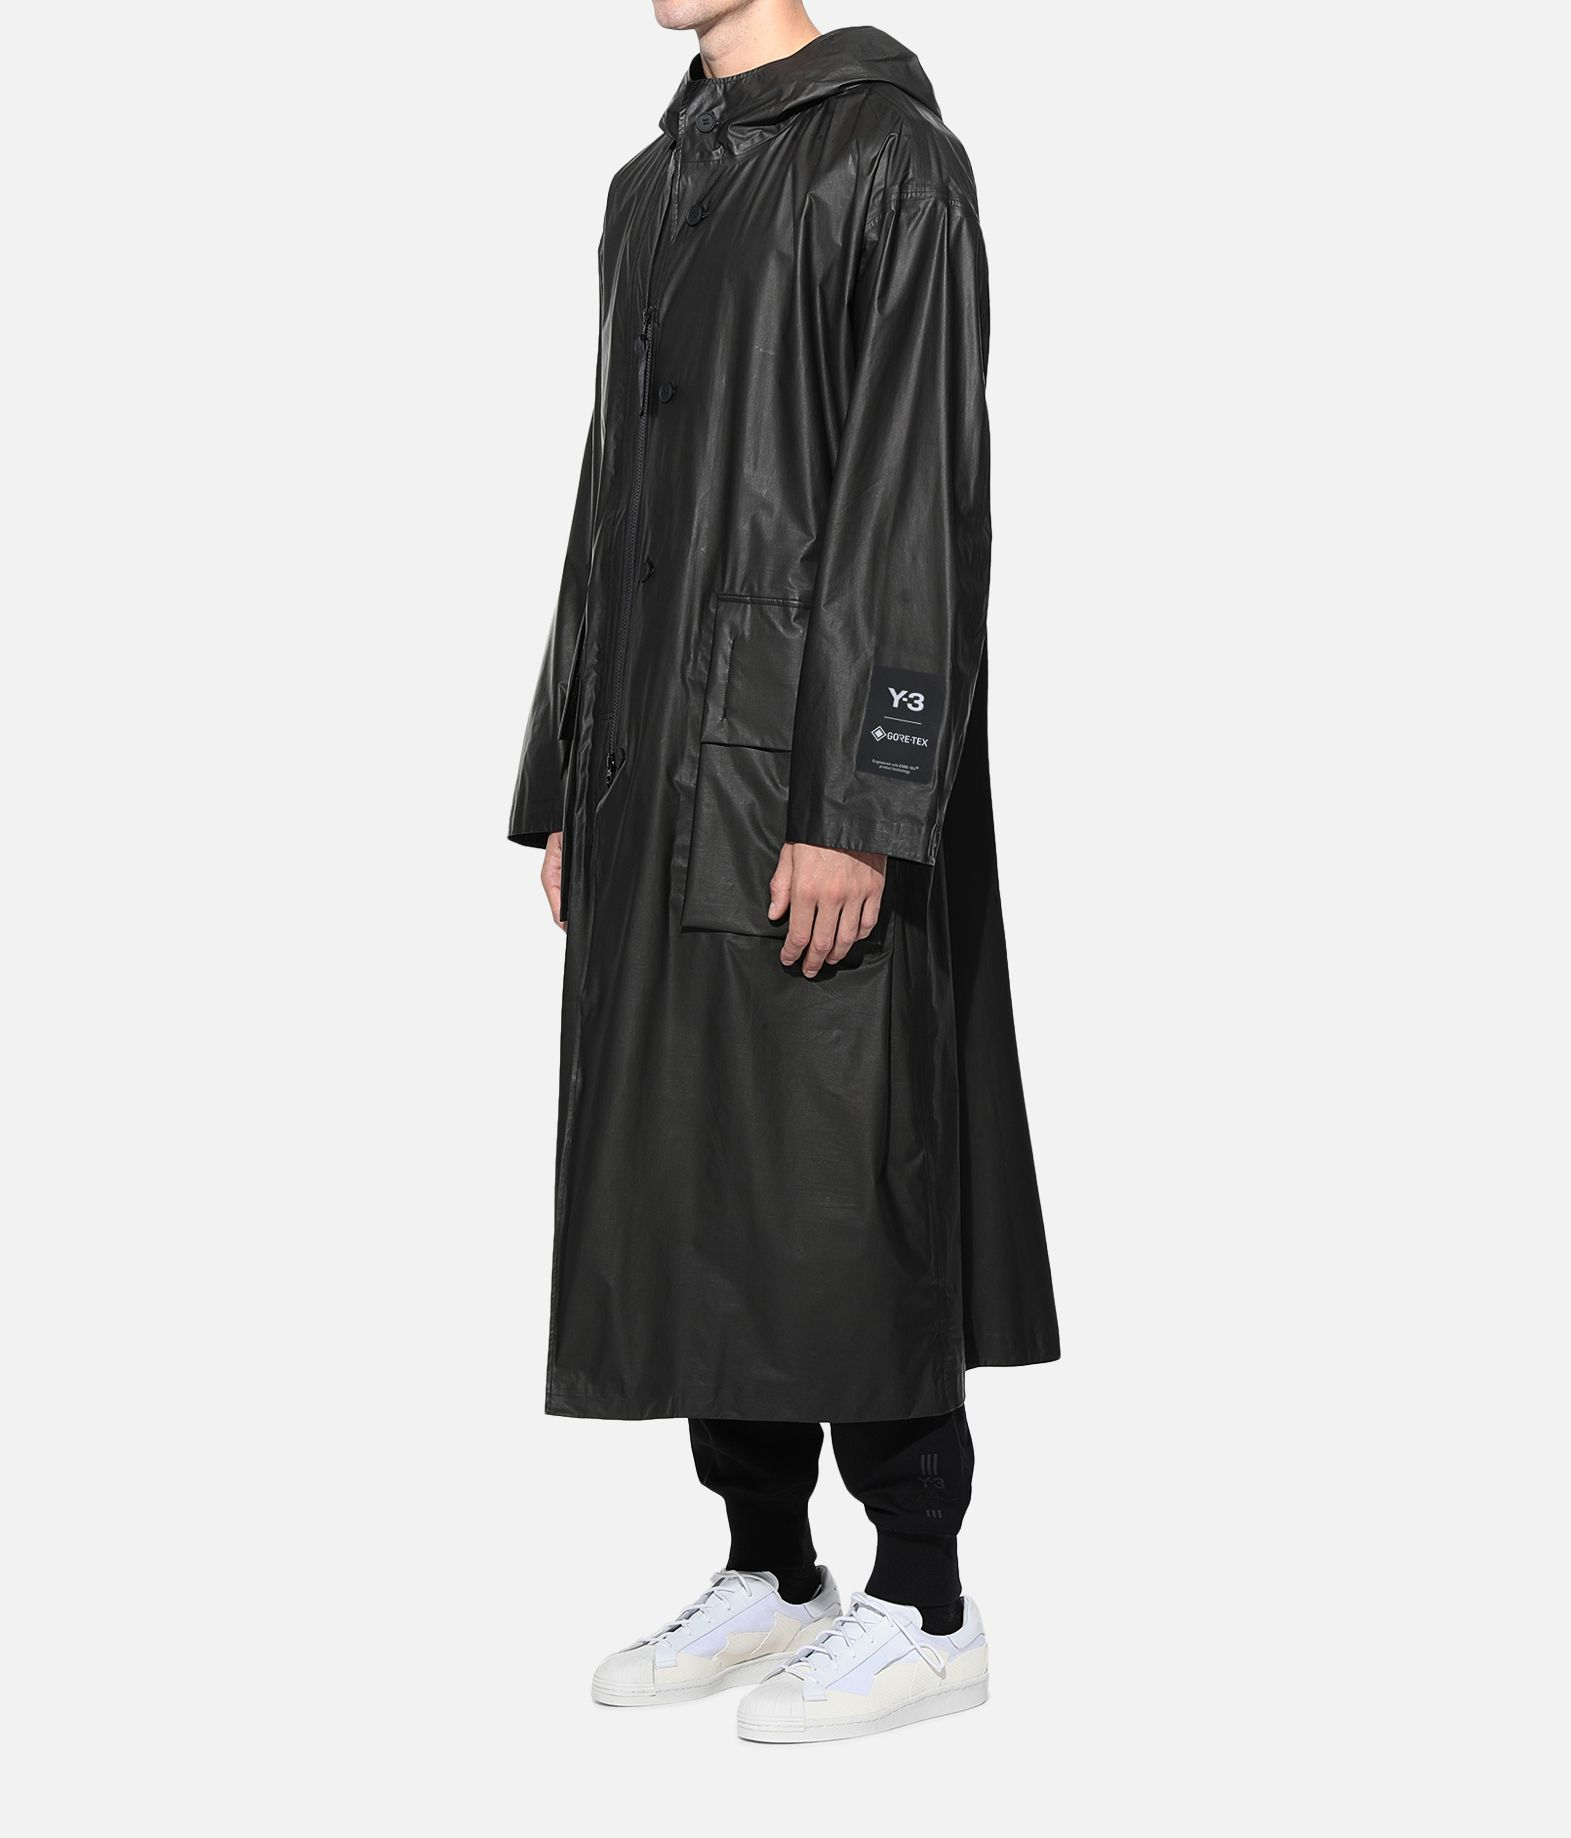 Y-3 Y-3 GORE-TEX Long Coat Raincoat Man e